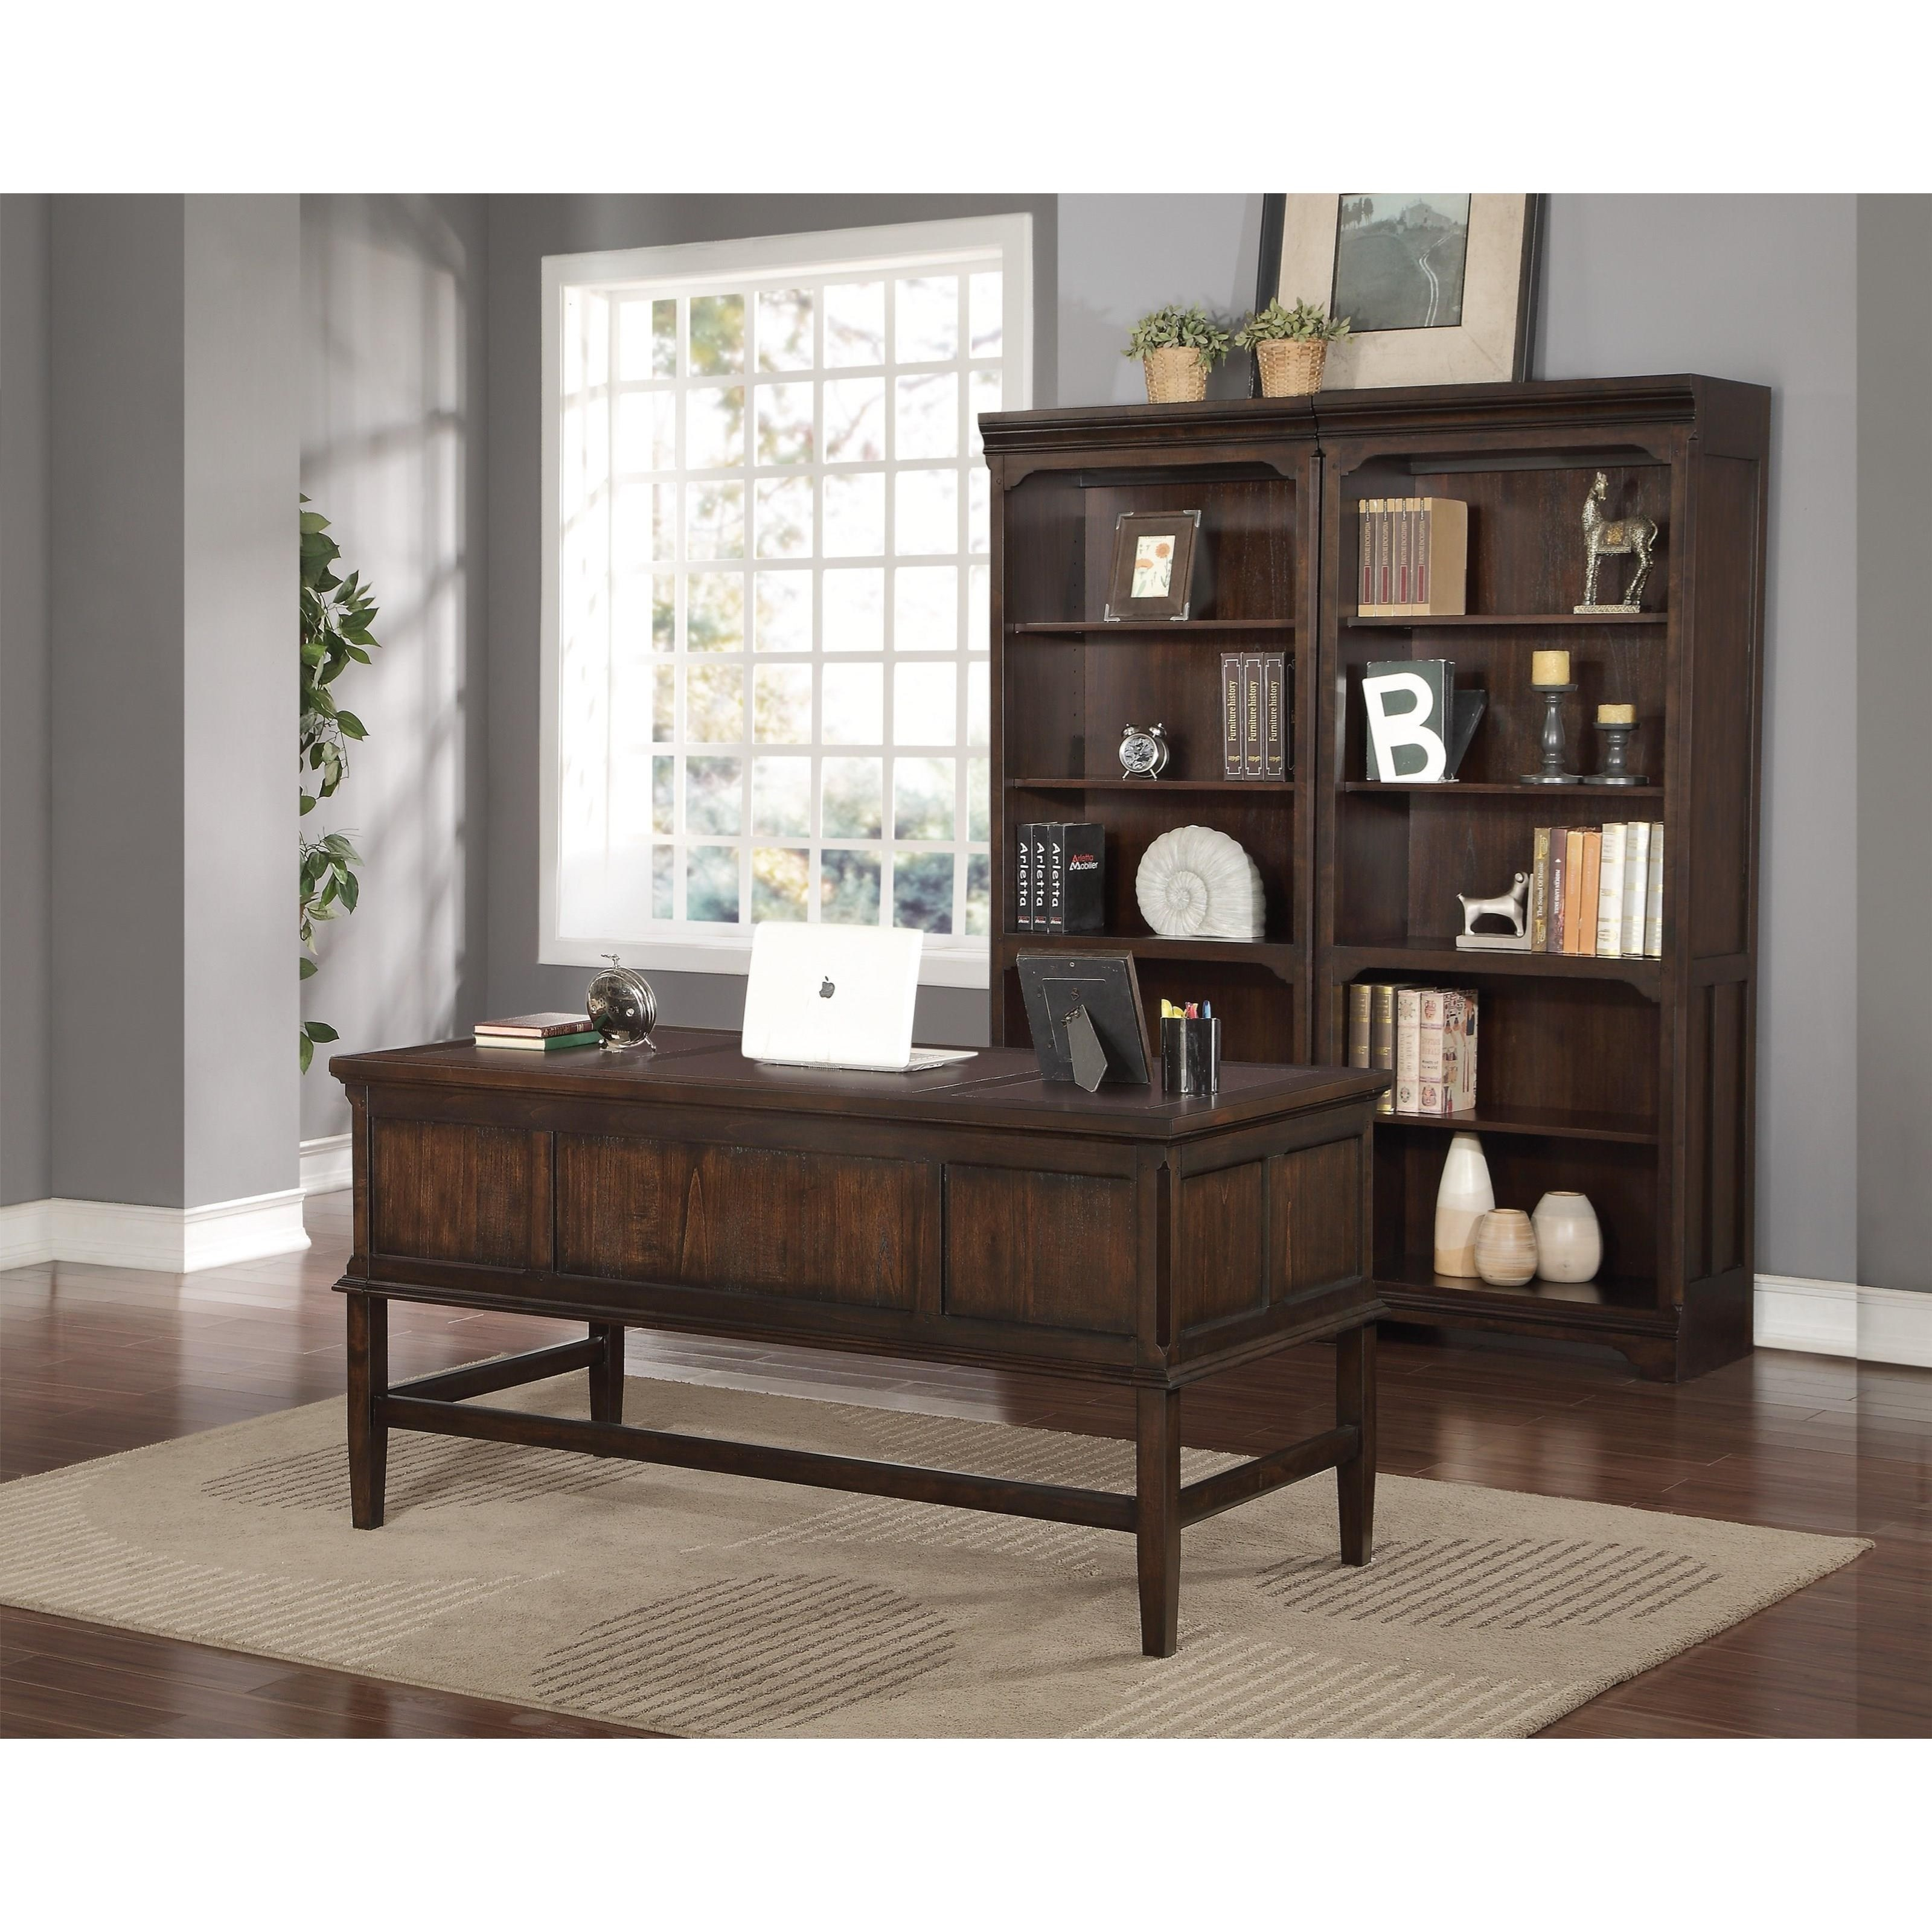 Flexsteel Wynwood Collection Walnut Creek Bunching Bookcase With 4 Shelves Olinde 39 S Furniture